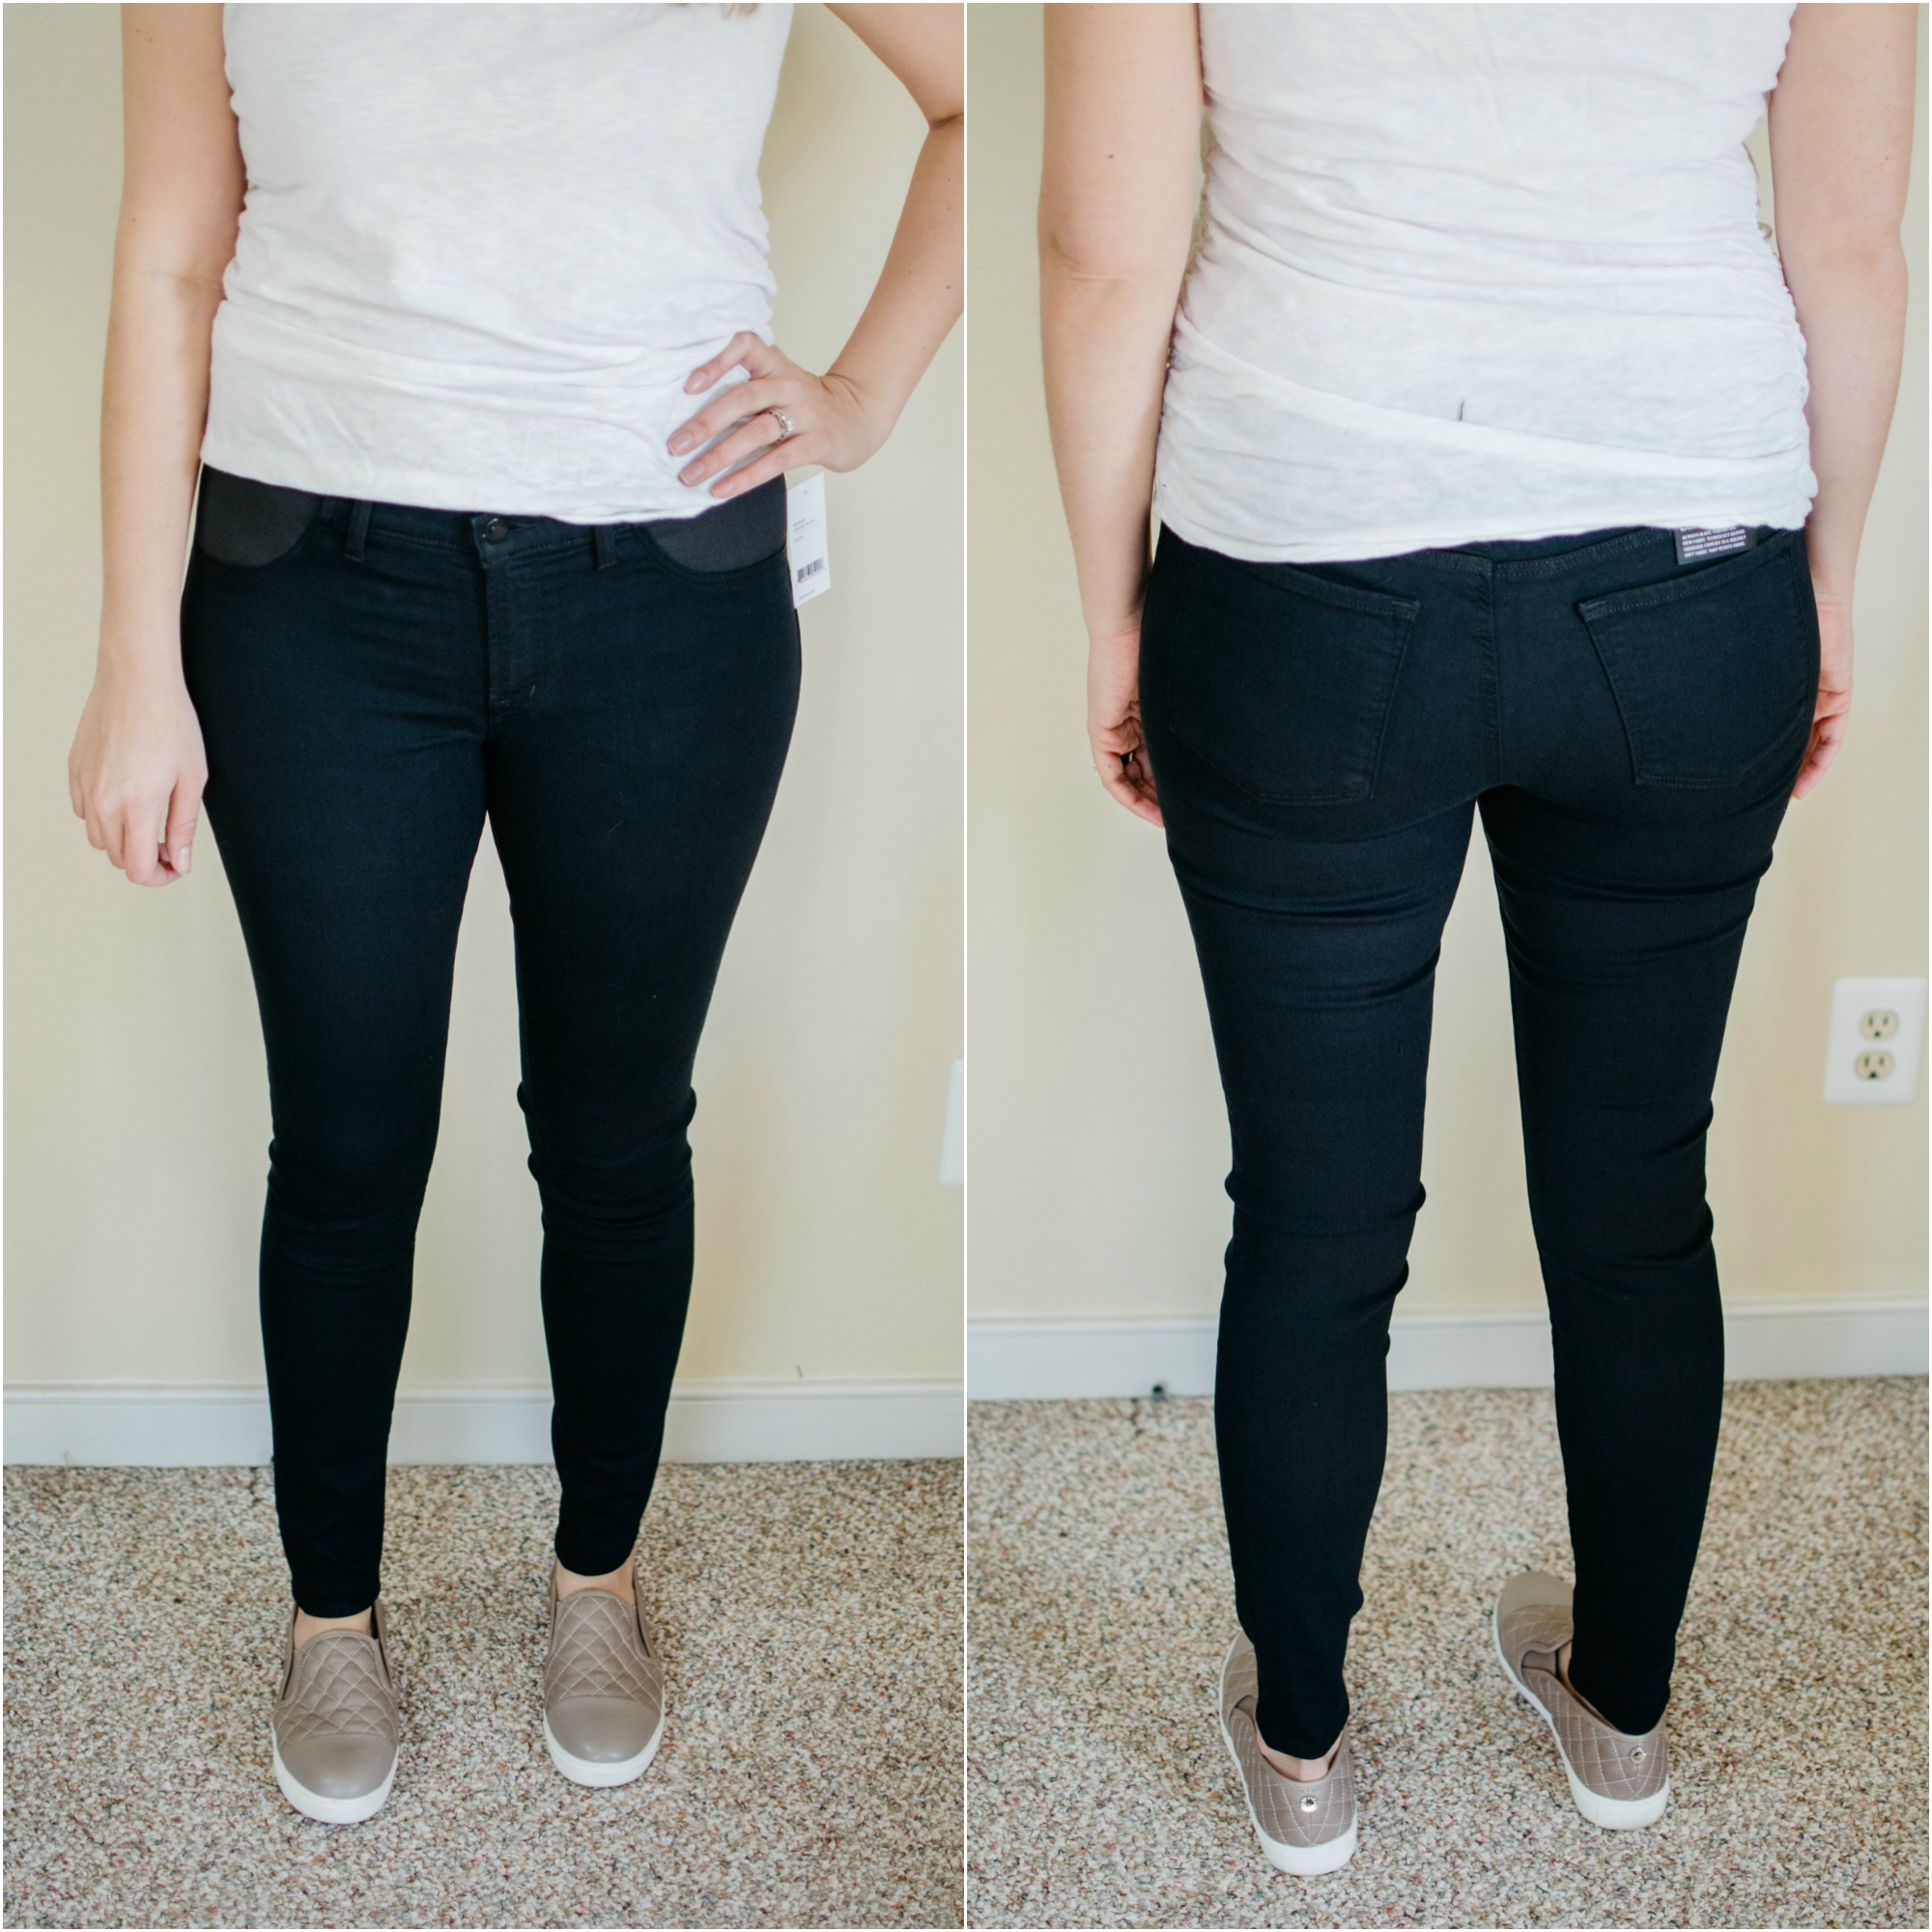 J Brand maternity skinny jeans review | See reviews of over 15 maternity jeans brands by clicking through to this post! | bylaurenm.com